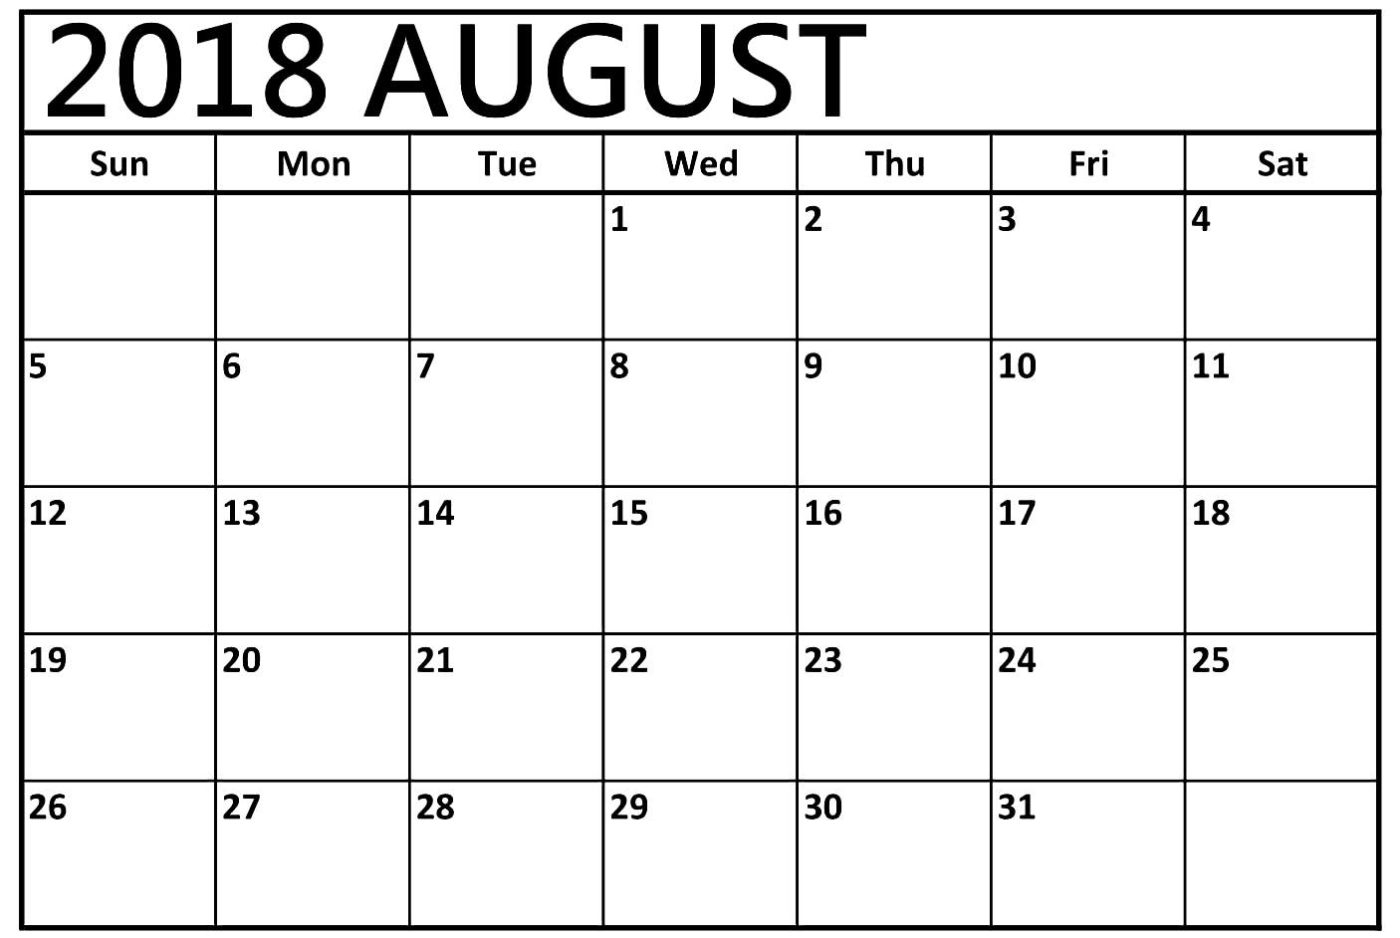 August 2018 Calendar Download Pdf, Excel, Word | Free Printable regarding Editable Calendars Download Template